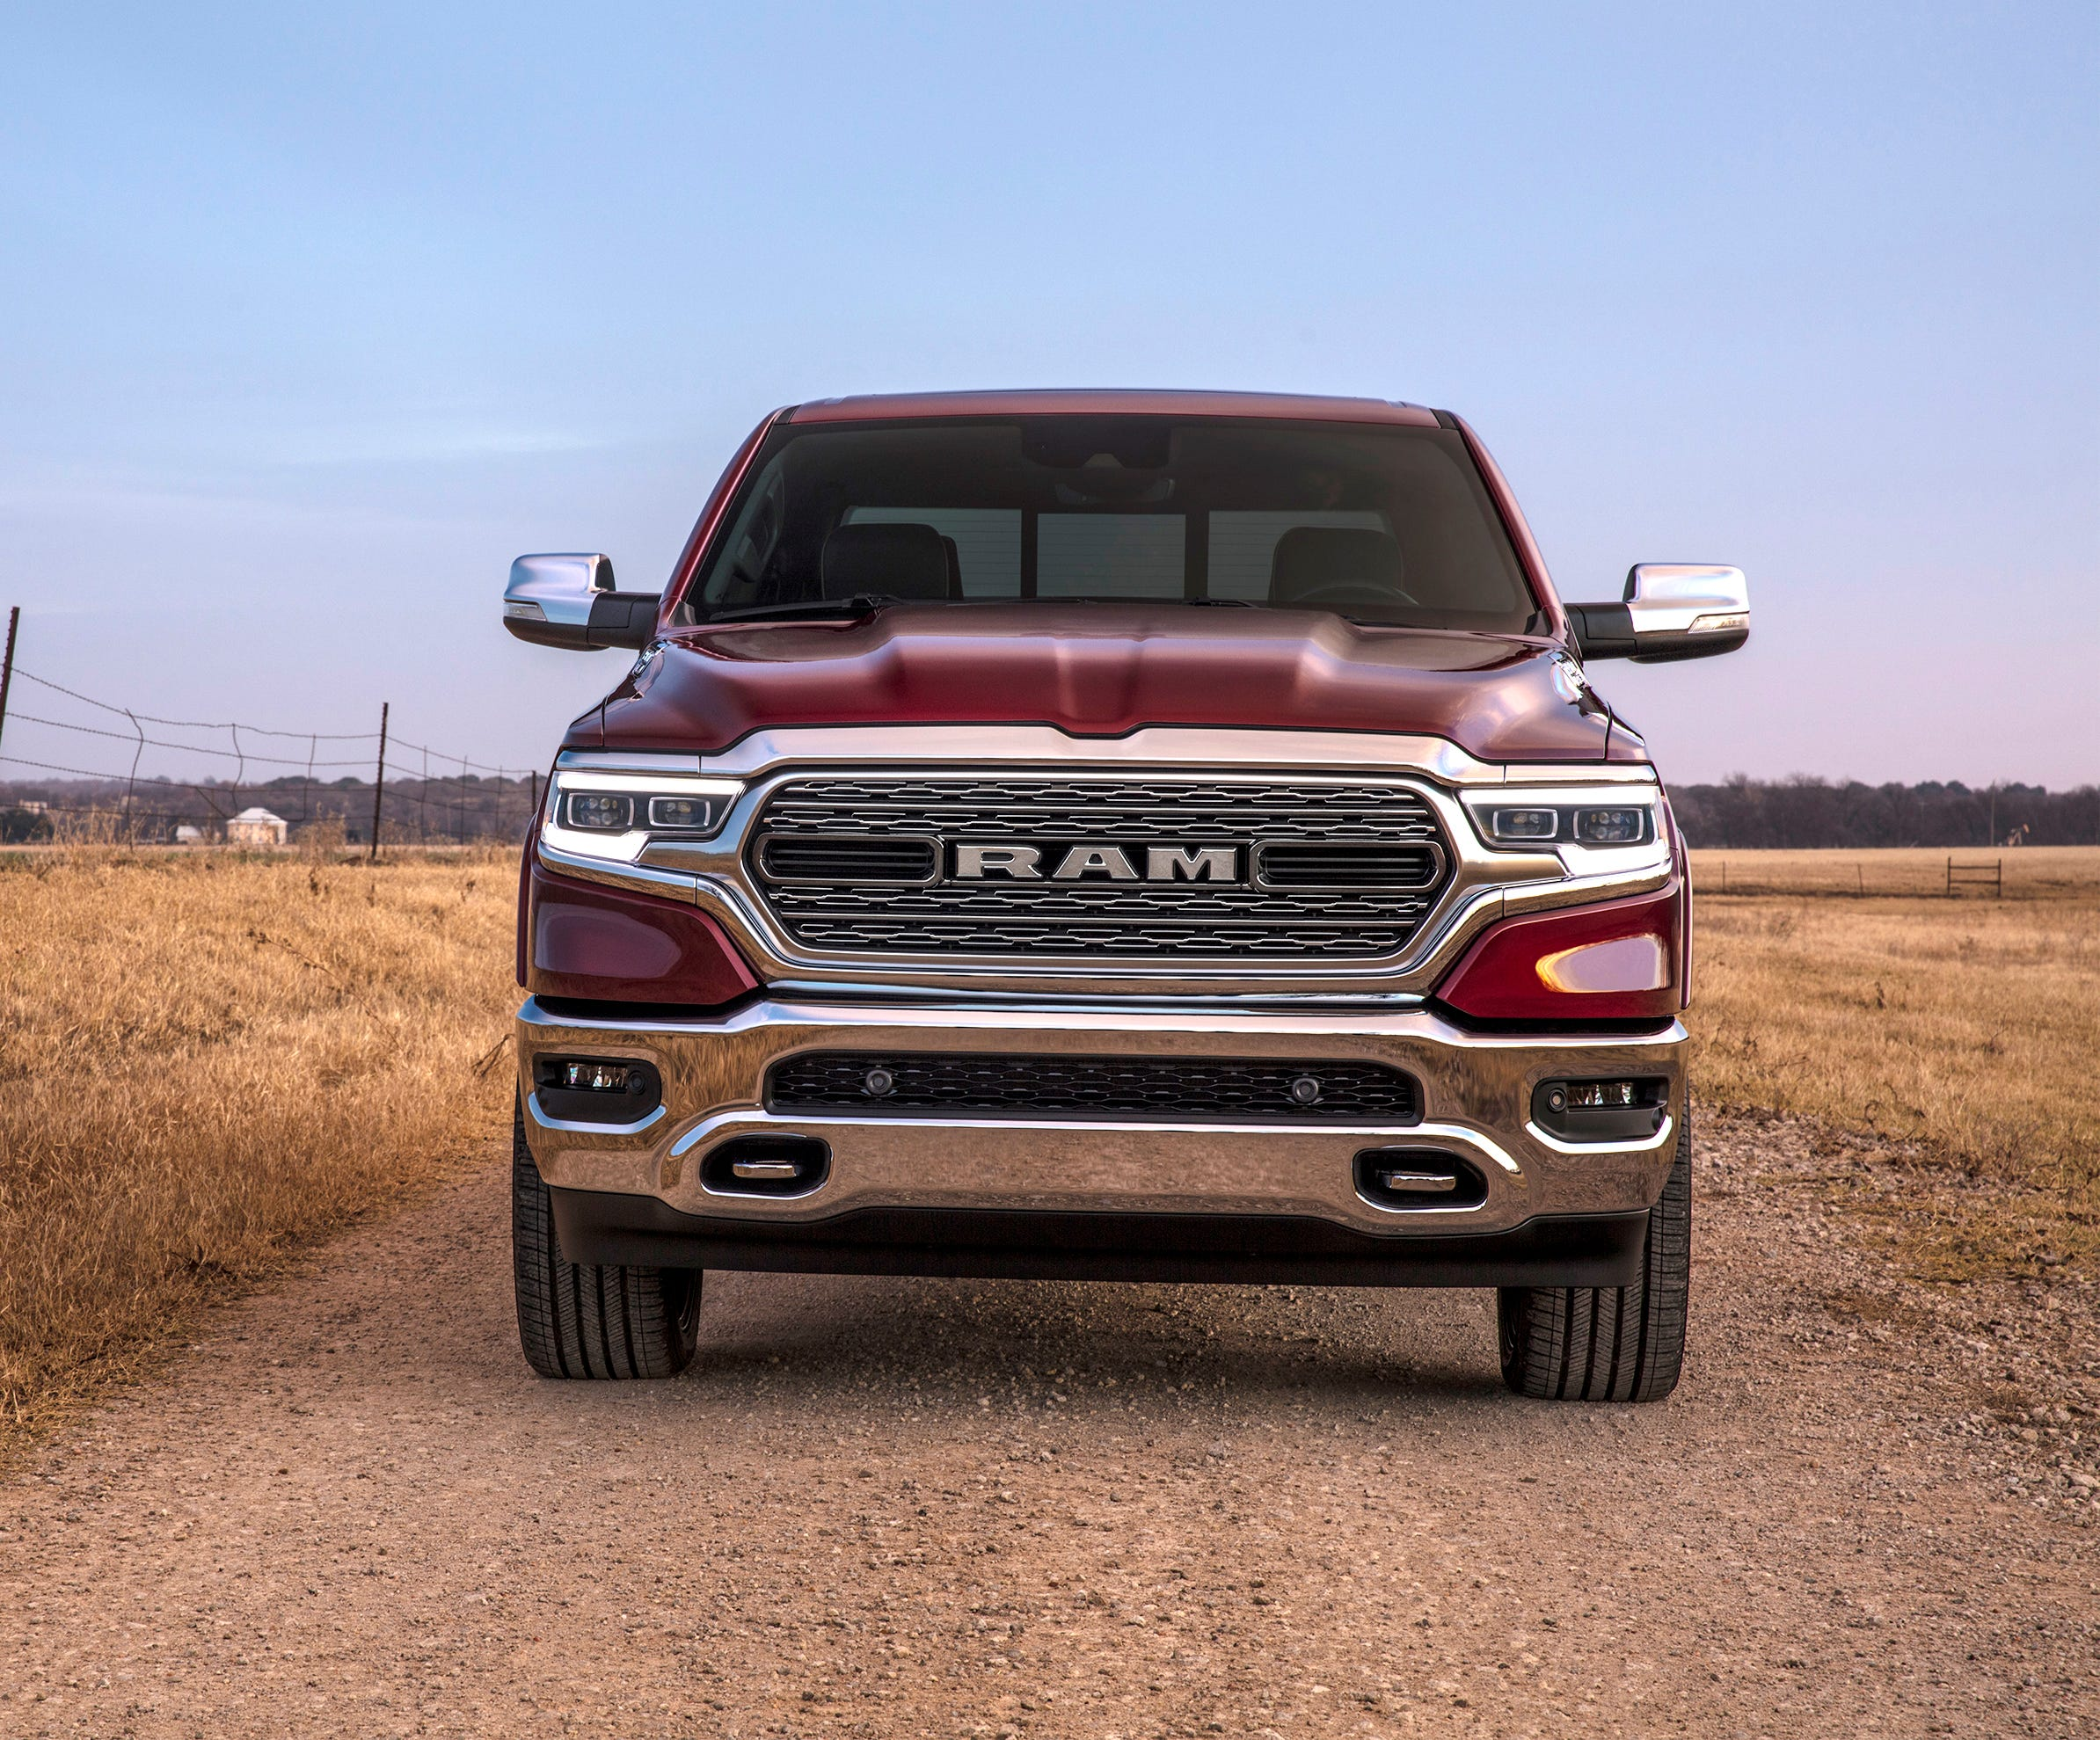 Ram pickup beats BMW, Mercedes as top luxury vehicle of 2020